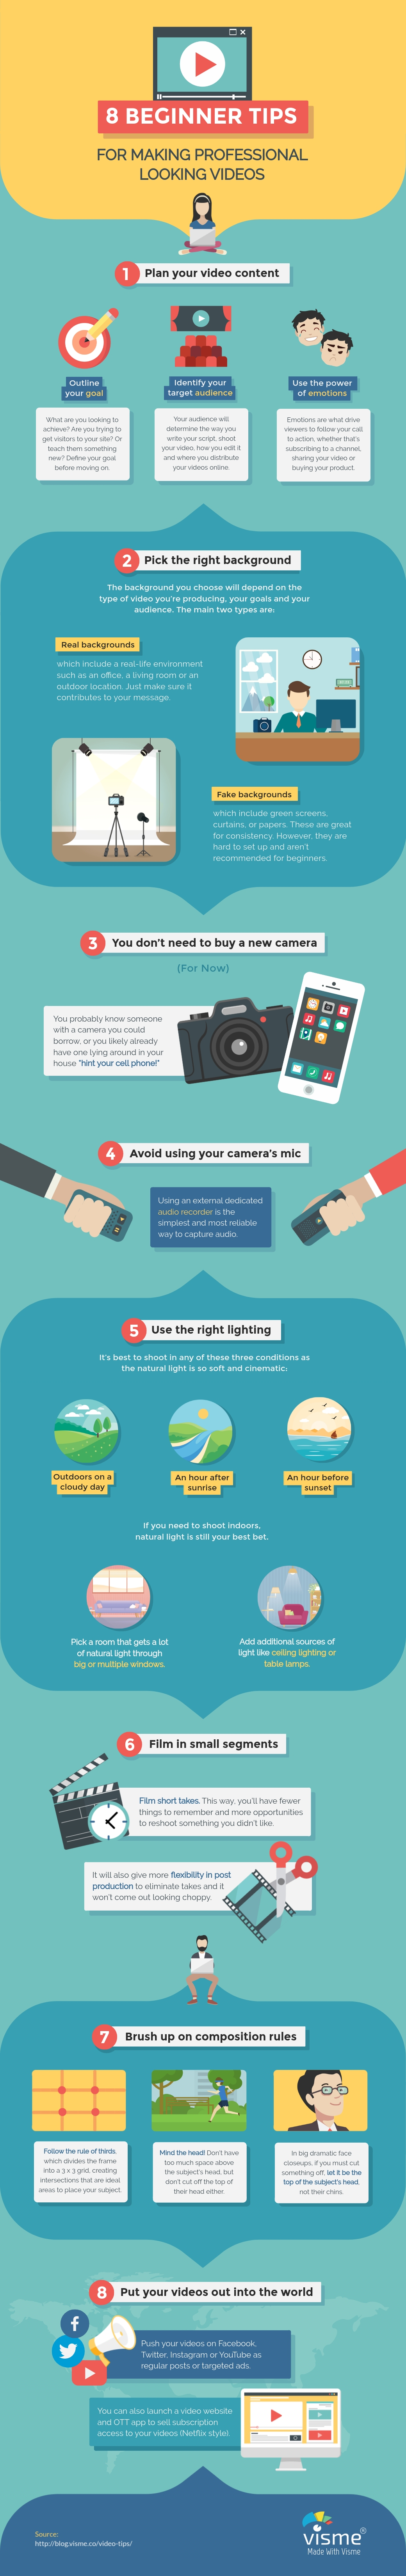 beginner video tips for making professional-looking videos infographic